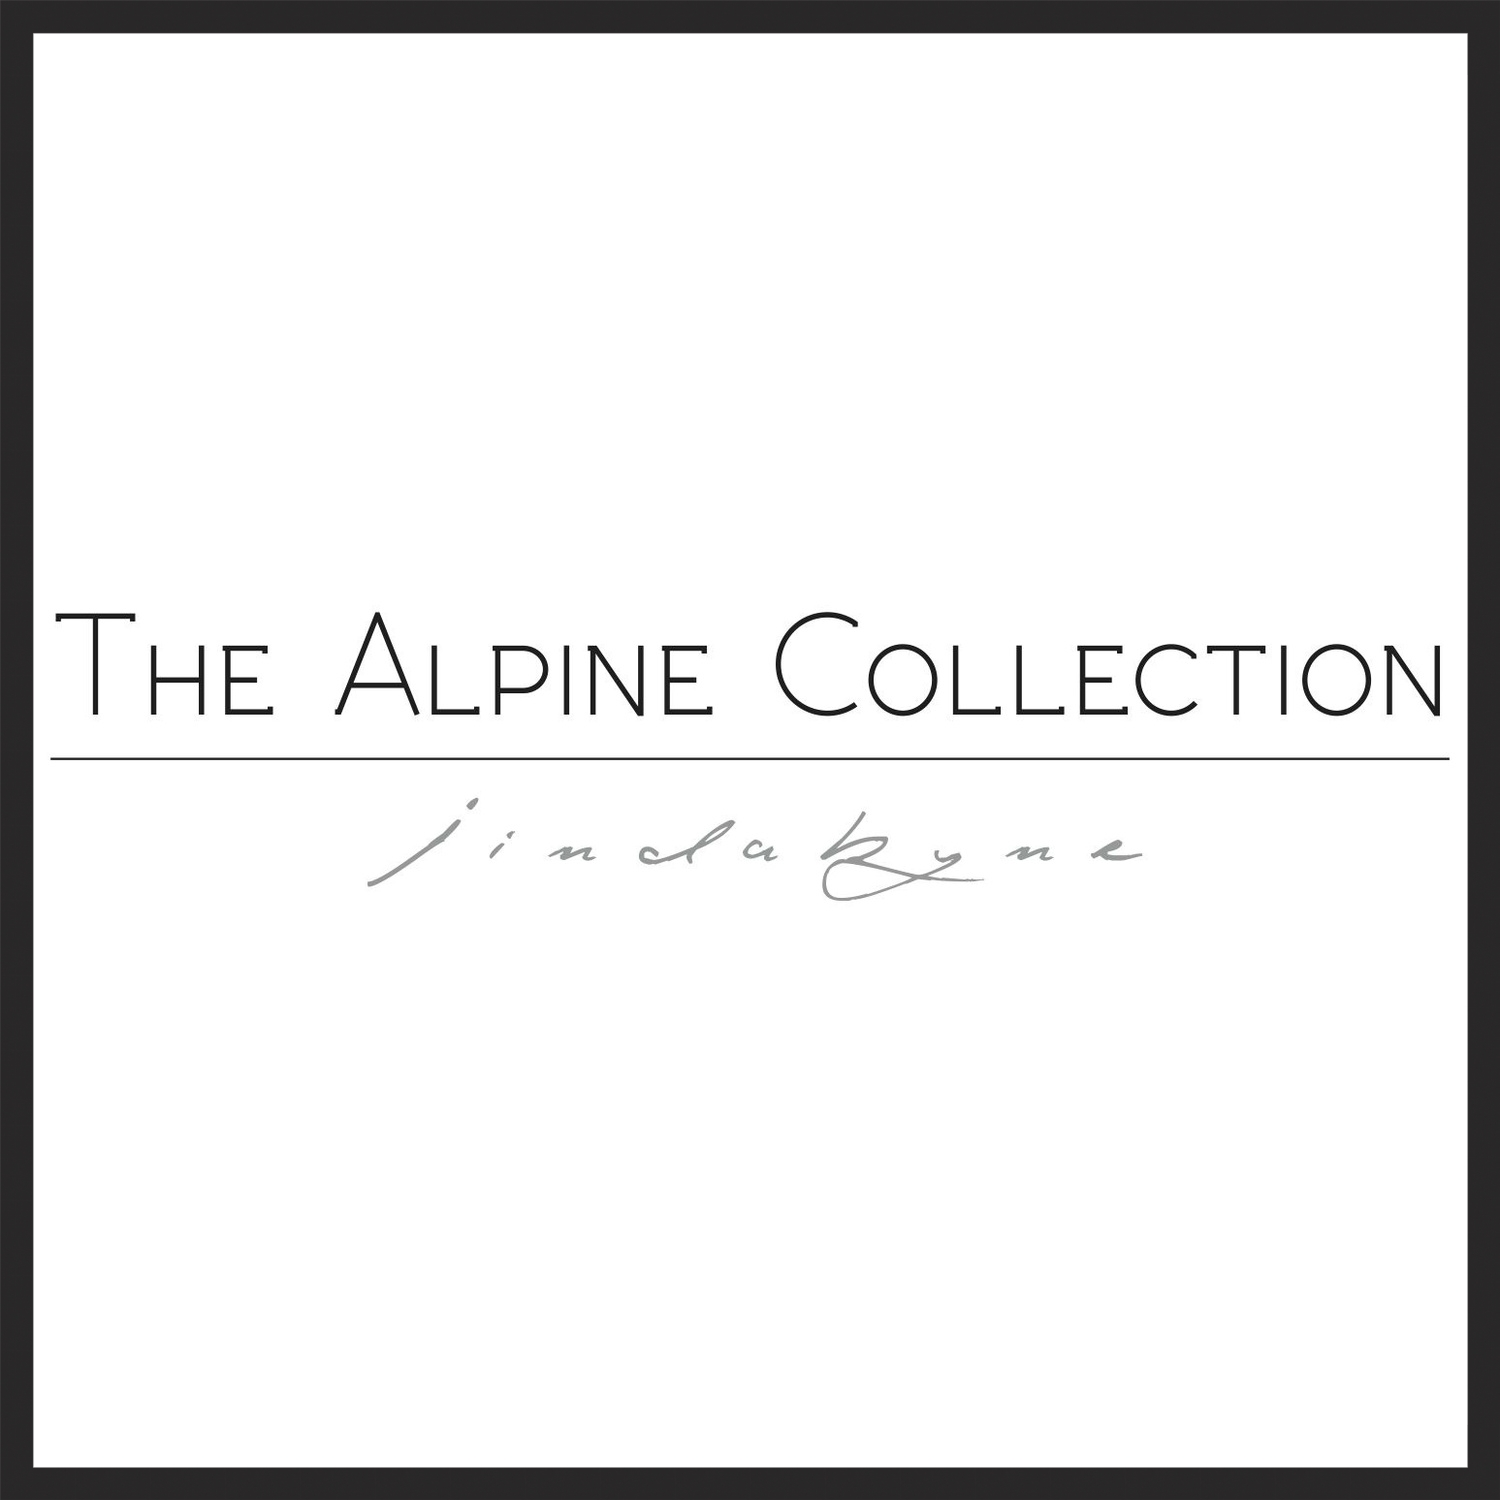 The Alpine Collection_button.jpg